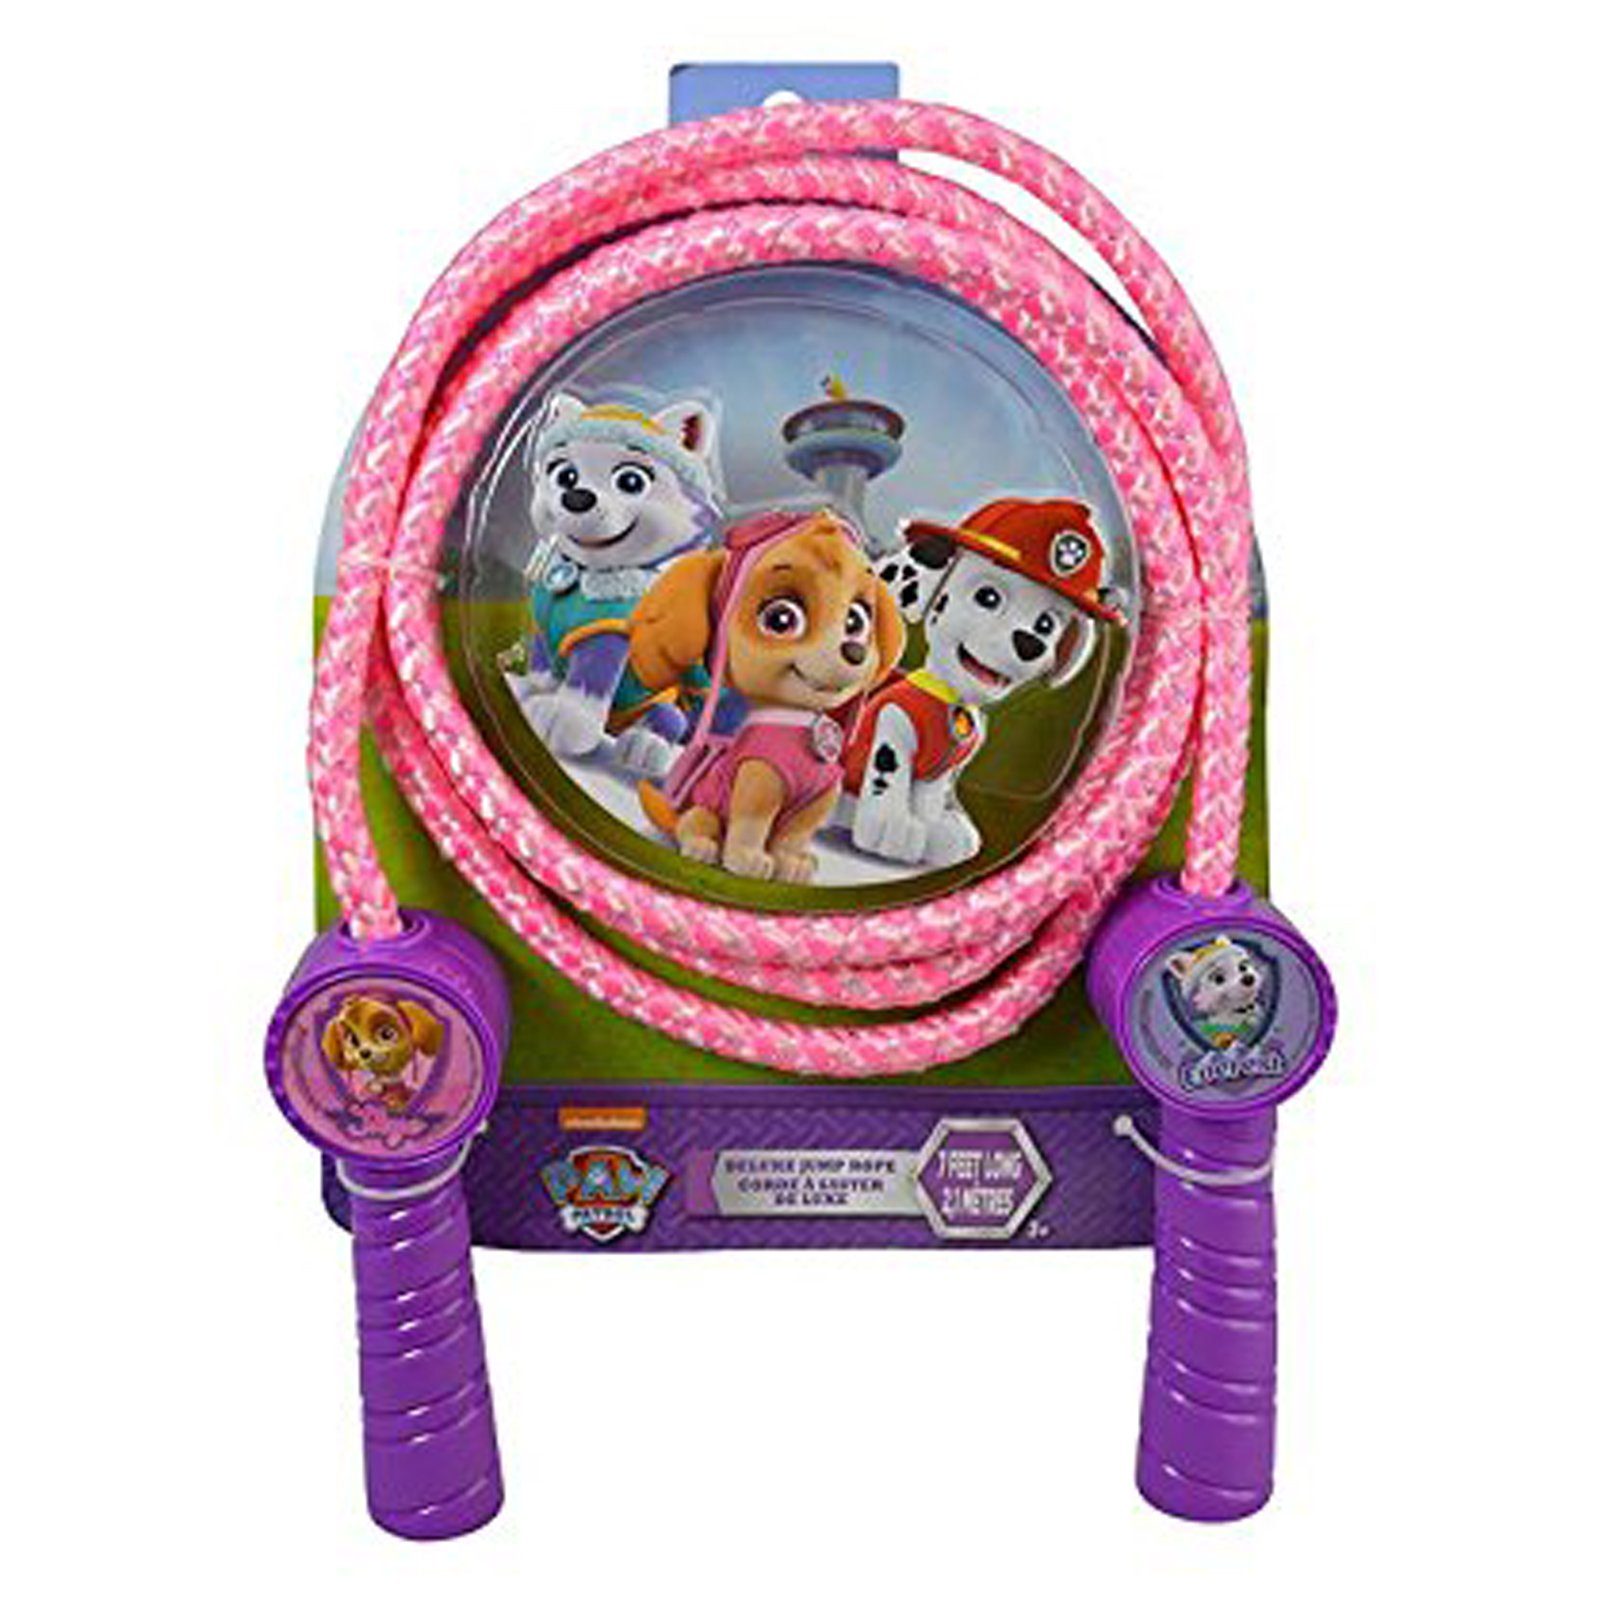 Paw Patrol Deluxe Jump Rope Molded Handles 7 Feet Promotes Exercise - Pink